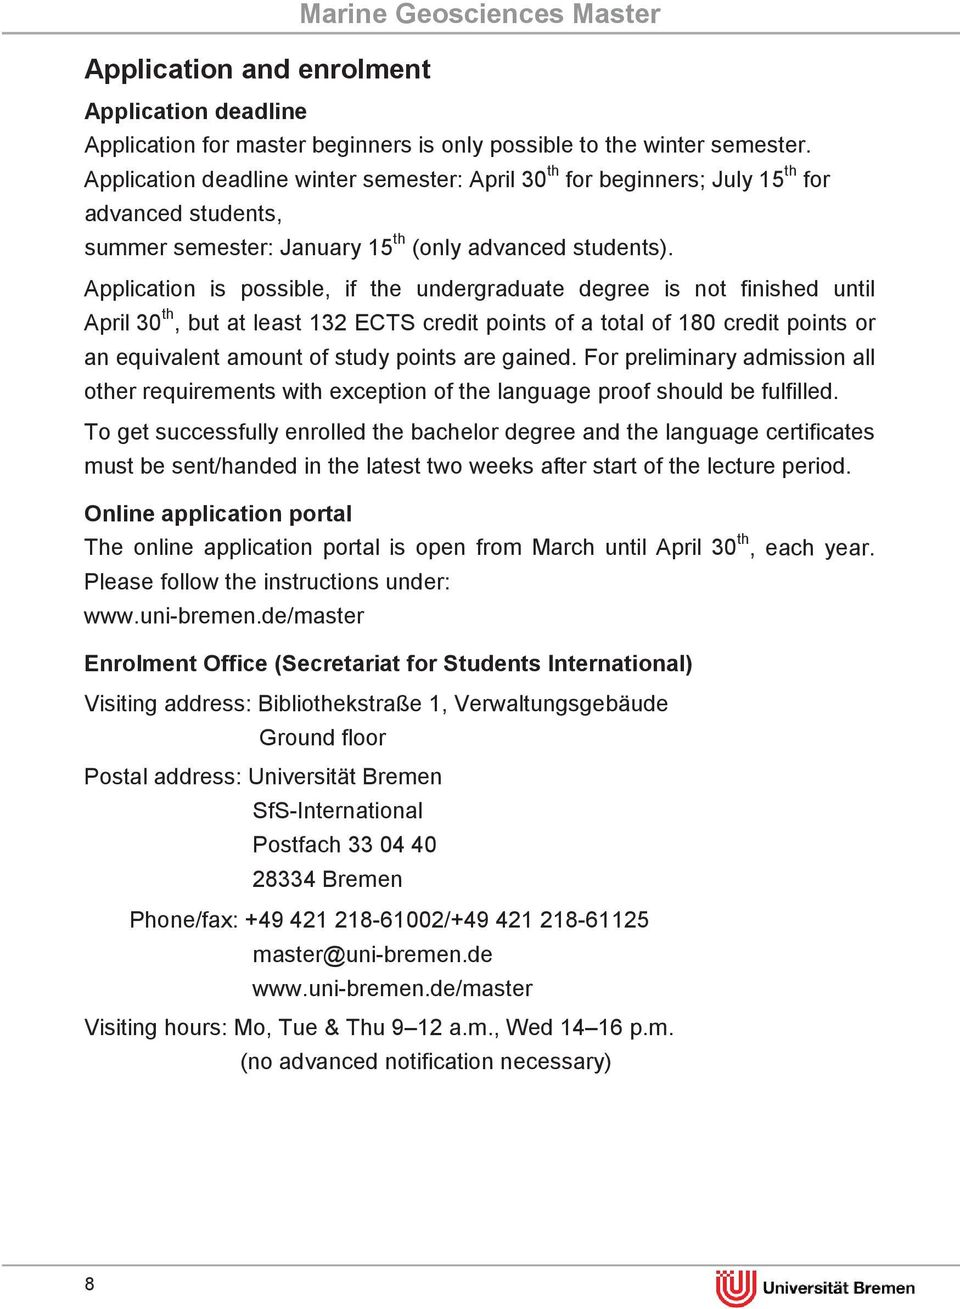 Application is possible, if the undergraduate degree is not finished until April 30 th, but at least 132 ECTS credit points of a total of 180 credit points or an equivalent amount of study points are